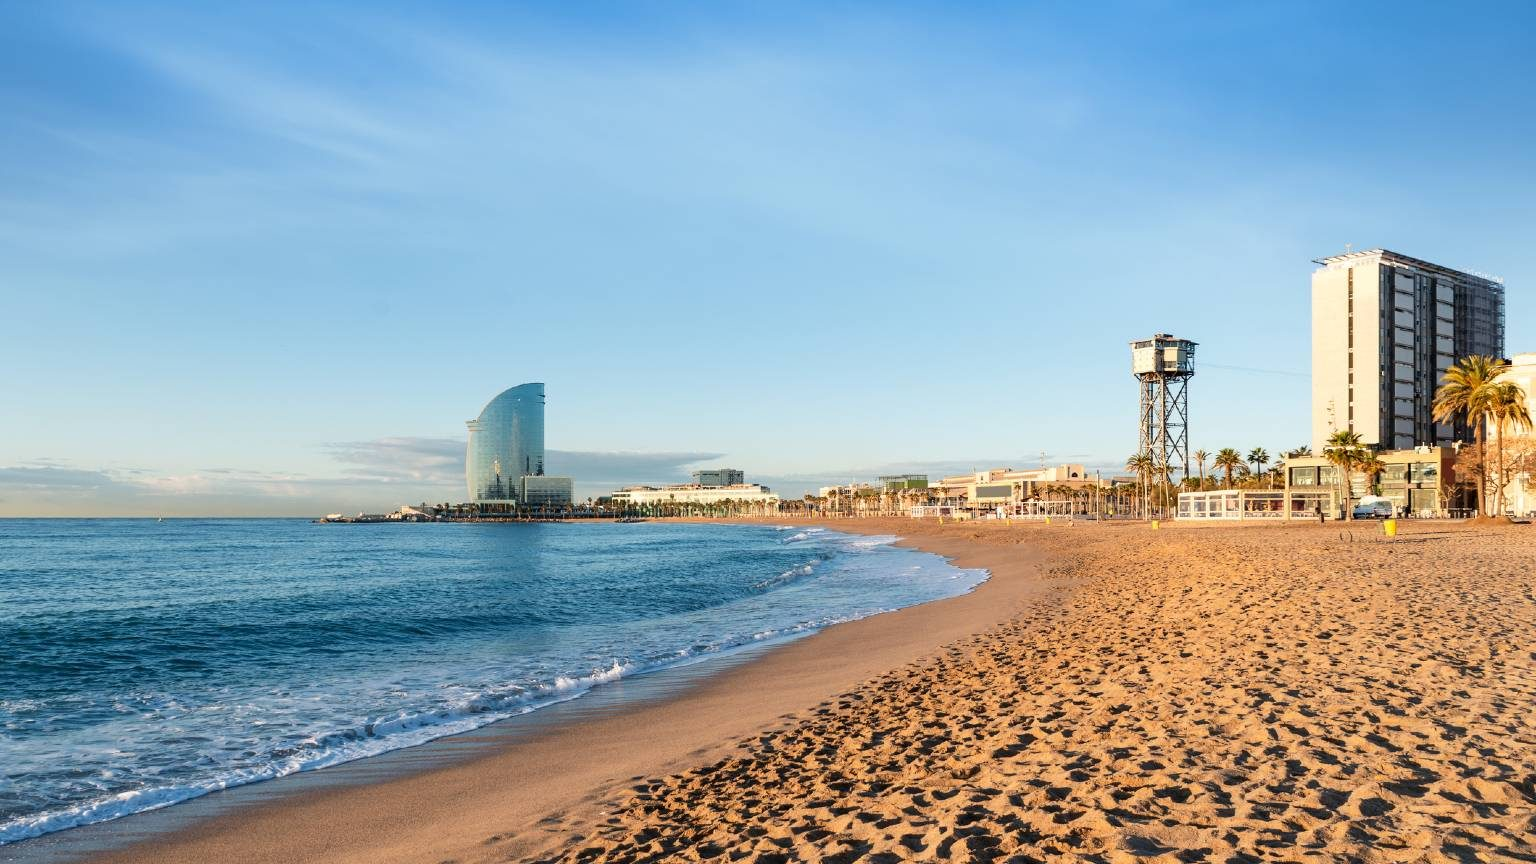 Barcelona with blue sky at sunrise